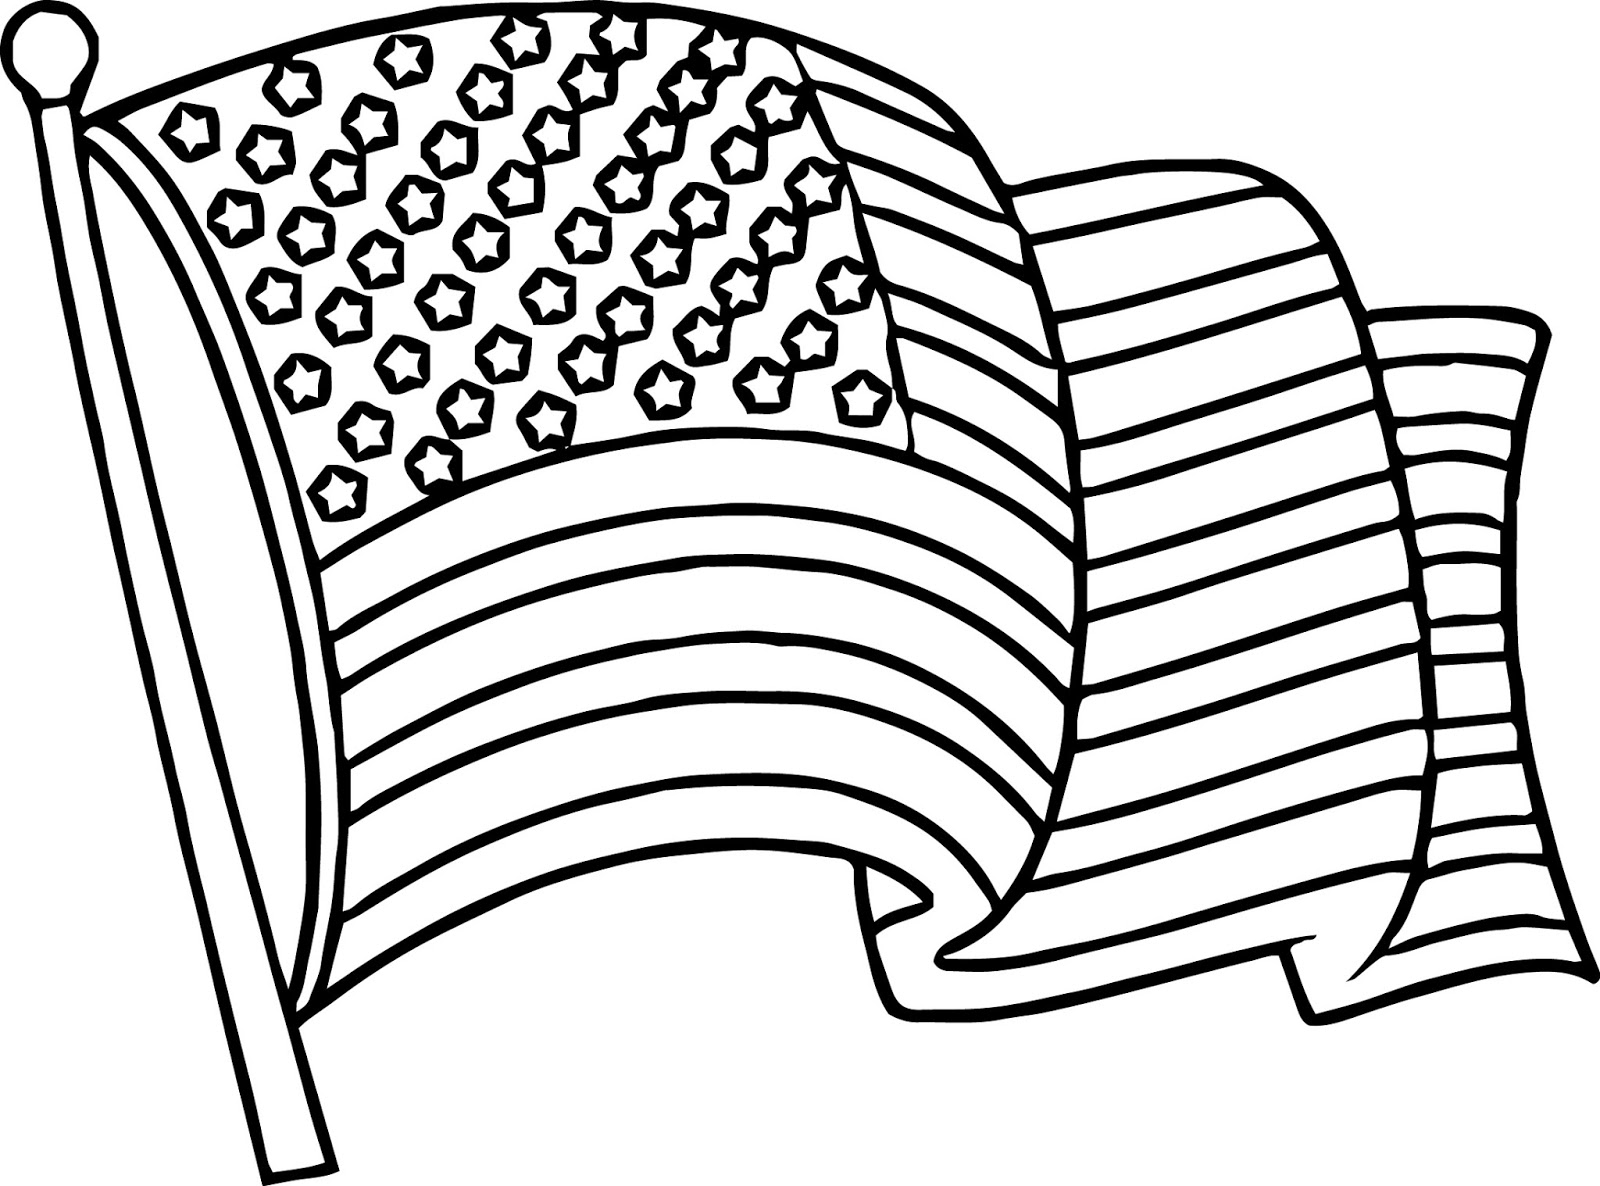 coloring sheet american flag coloring page american flag coloring pages coloring pages to download page flag american coloring sheet coloring